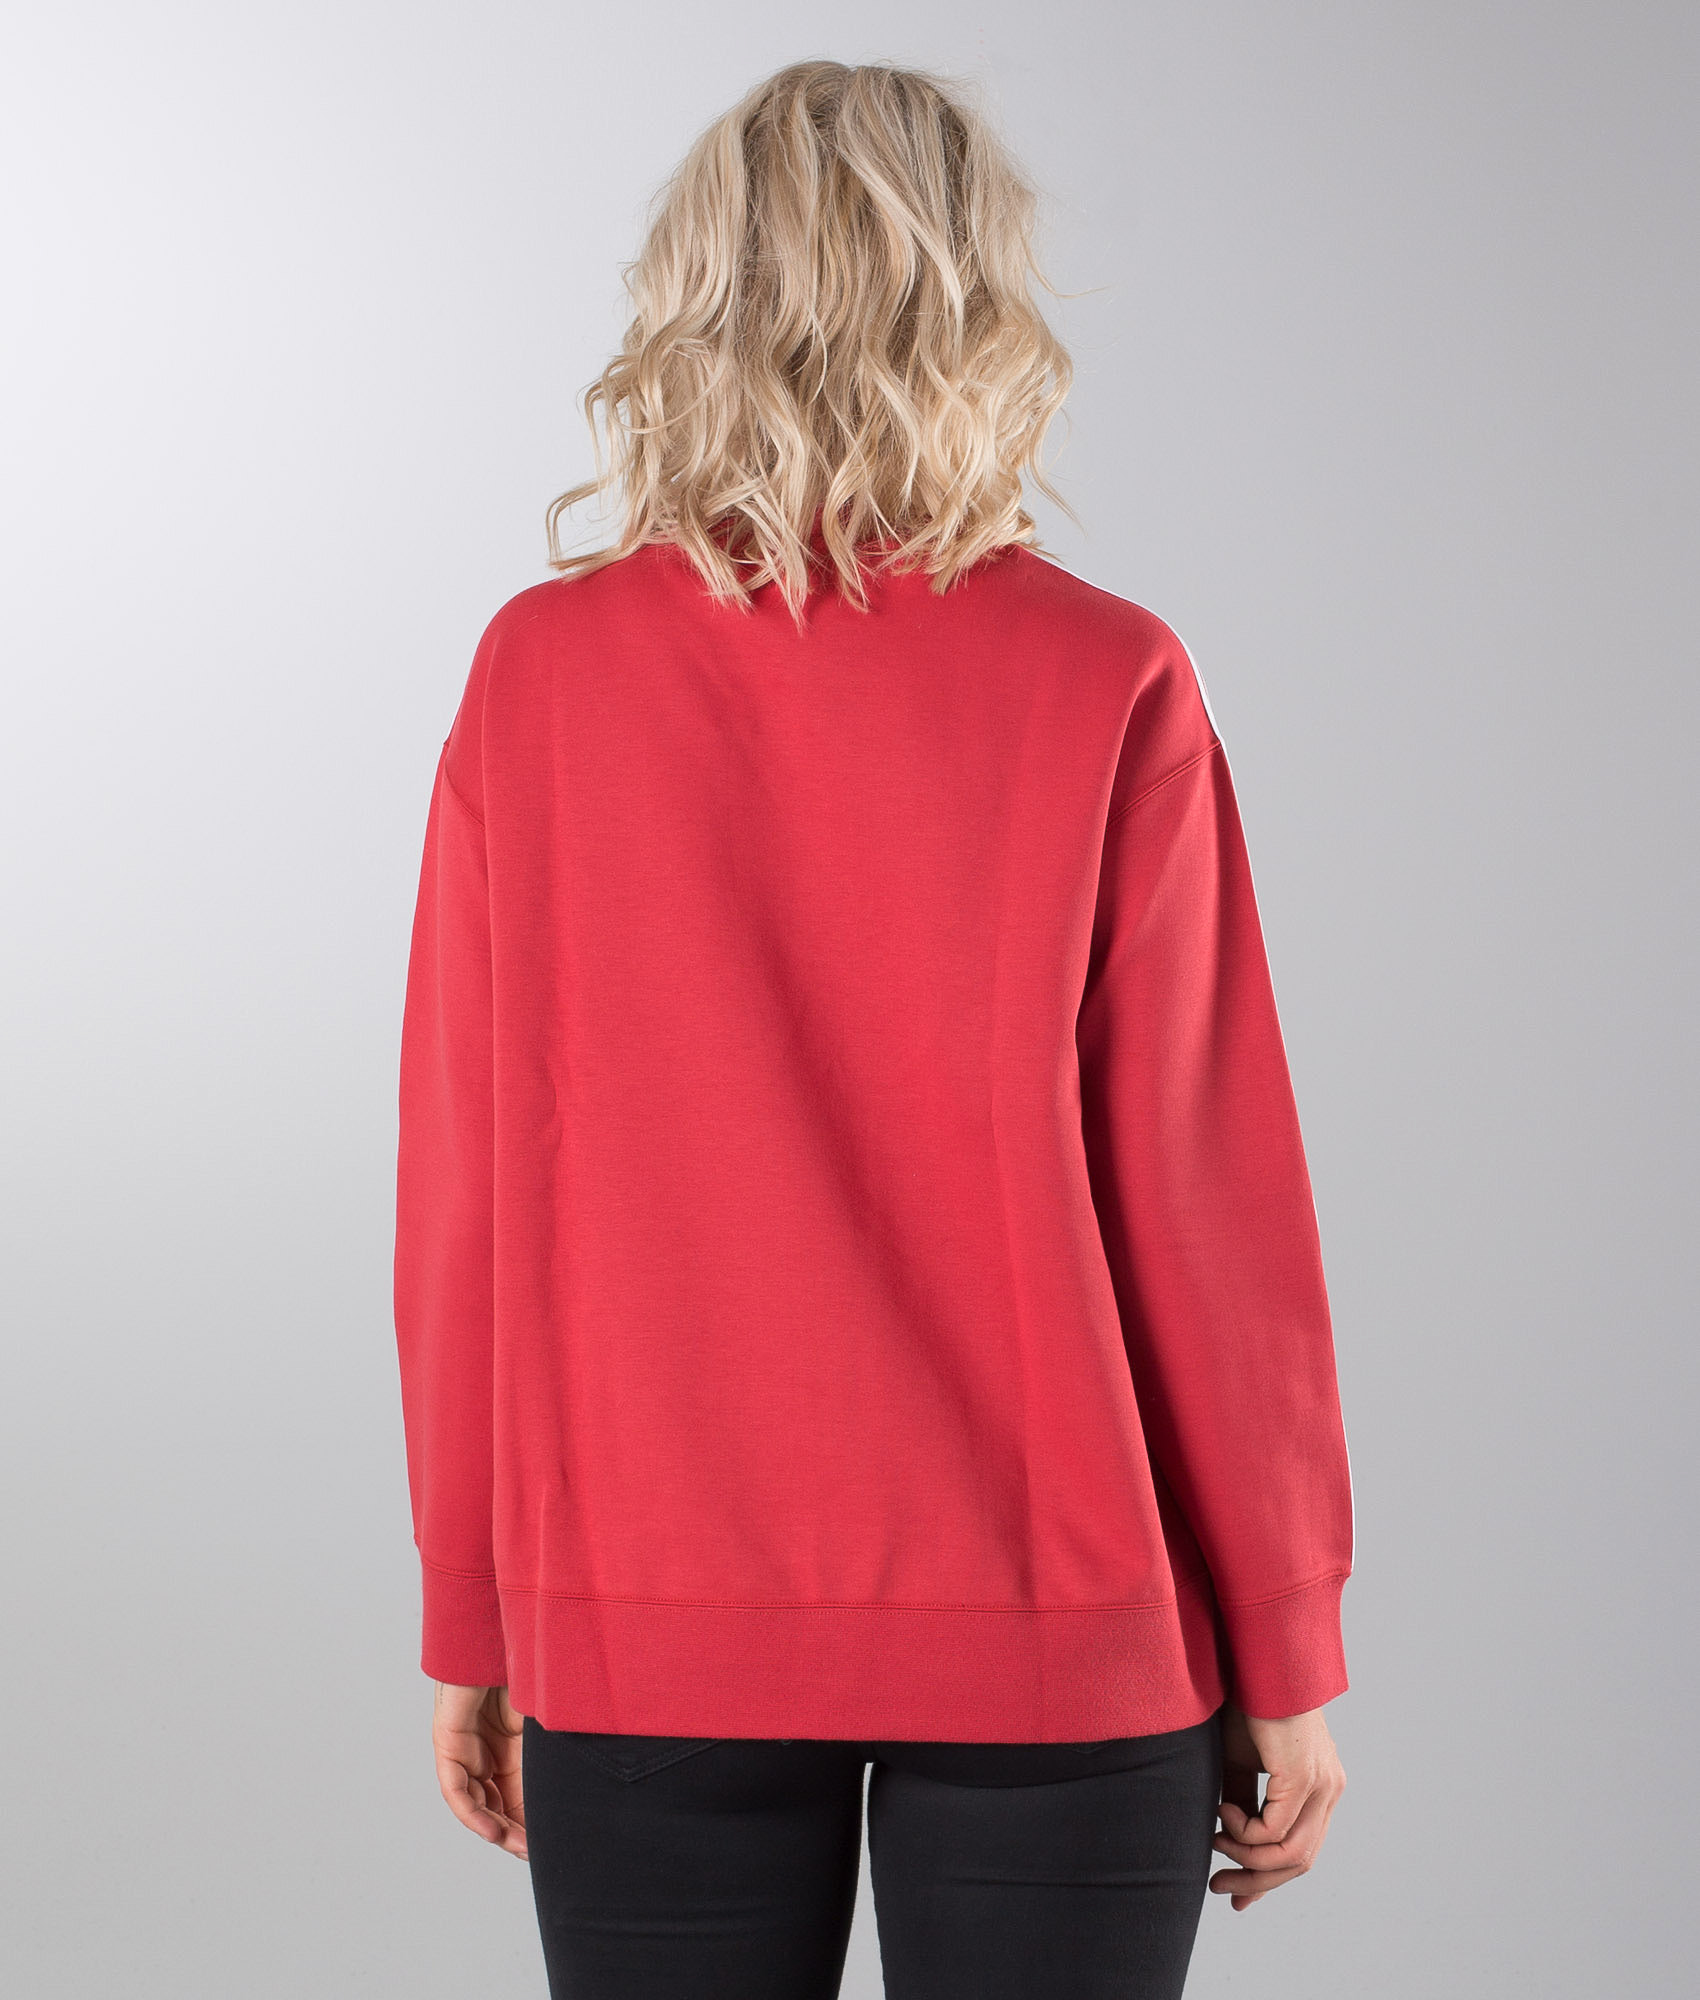 3154ccfefc60 Adidas Originals Crew Sweater Raw Red - Ridestore.com